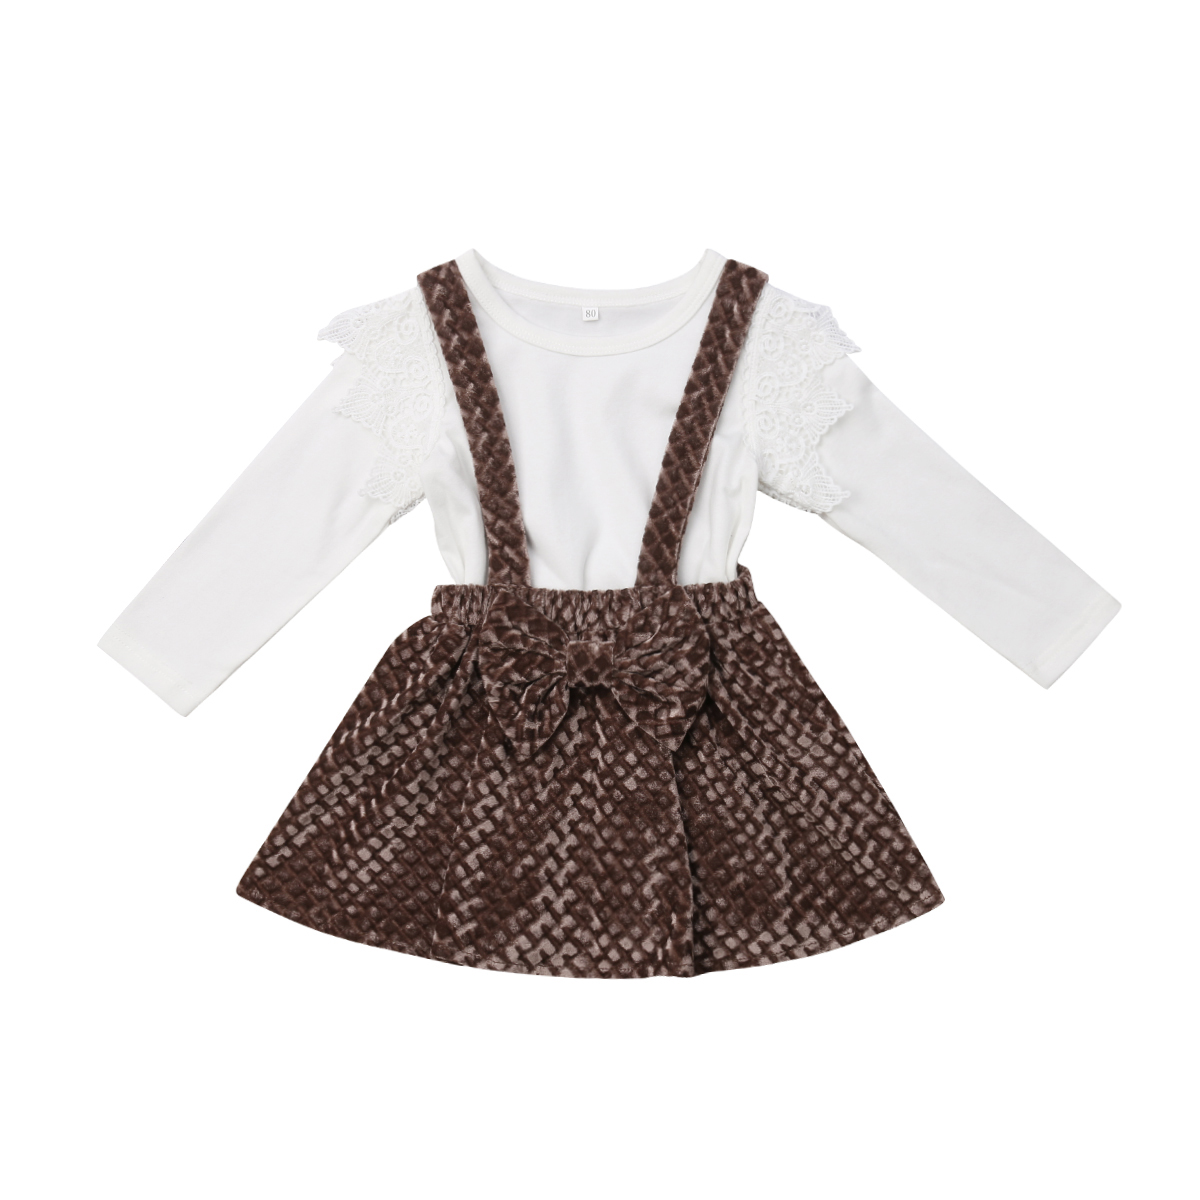 2Pcs Kids Baby Girls Long Sleeve Lace Ruffle T-shirt Solid Tops Suspender Skirts Overalls Outfits Casual Clothes Set